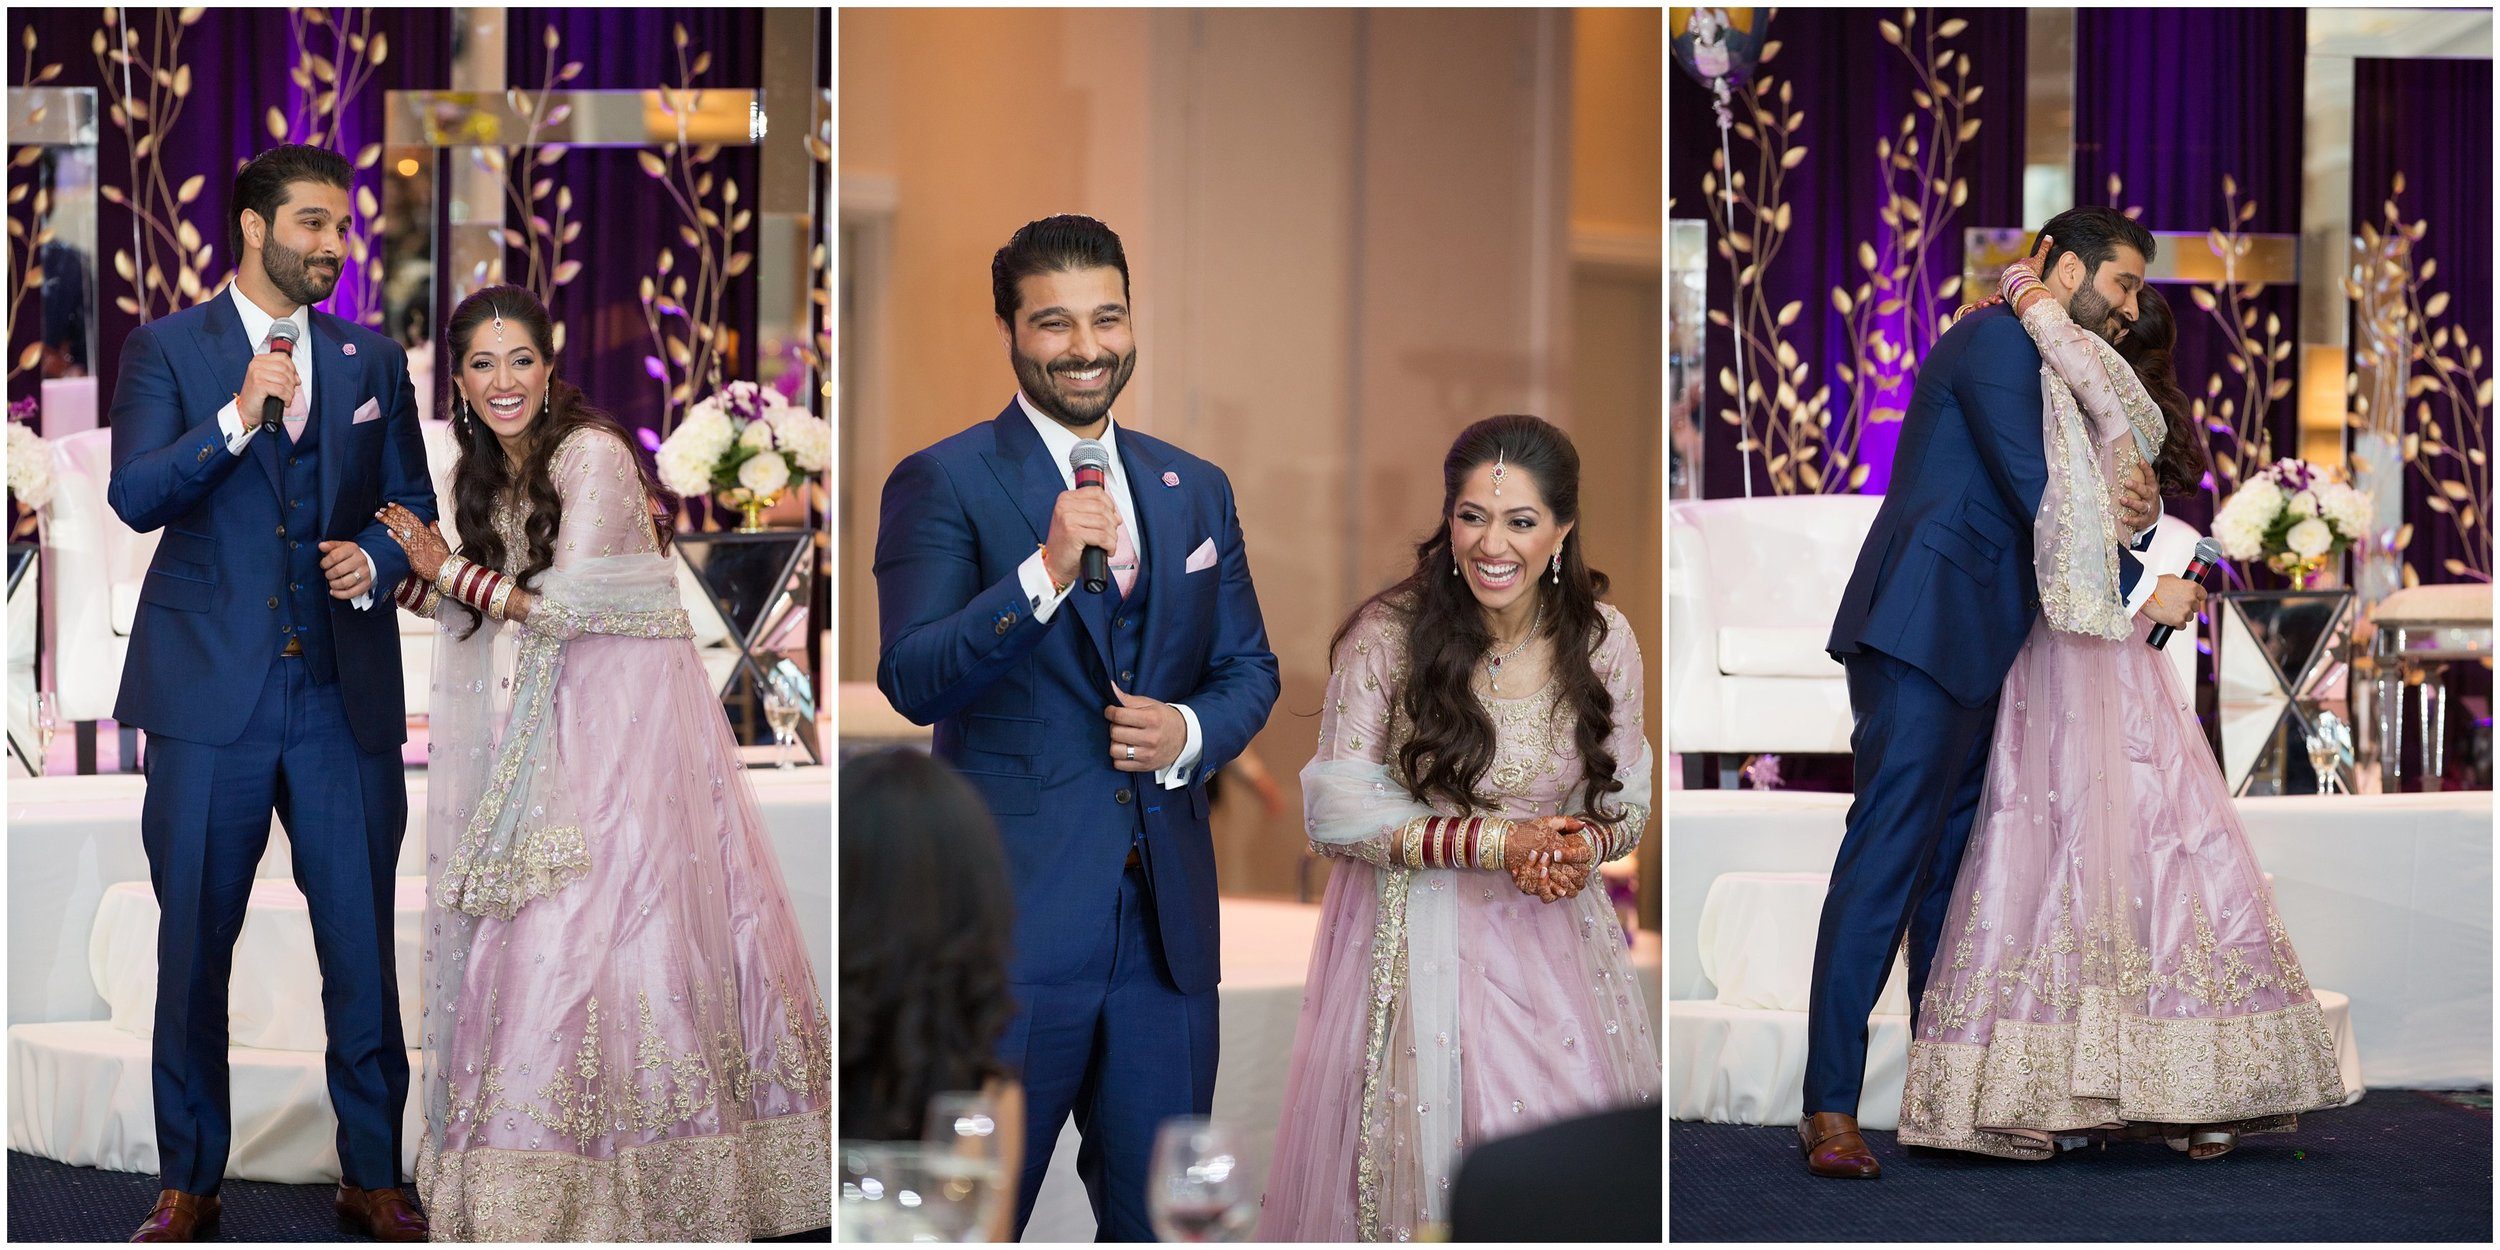 Le Cape Weddings - South Asian Wedding in Illinois - Tanvi and Anshul -1449_LuxuryDestinationPhotographer.jpg